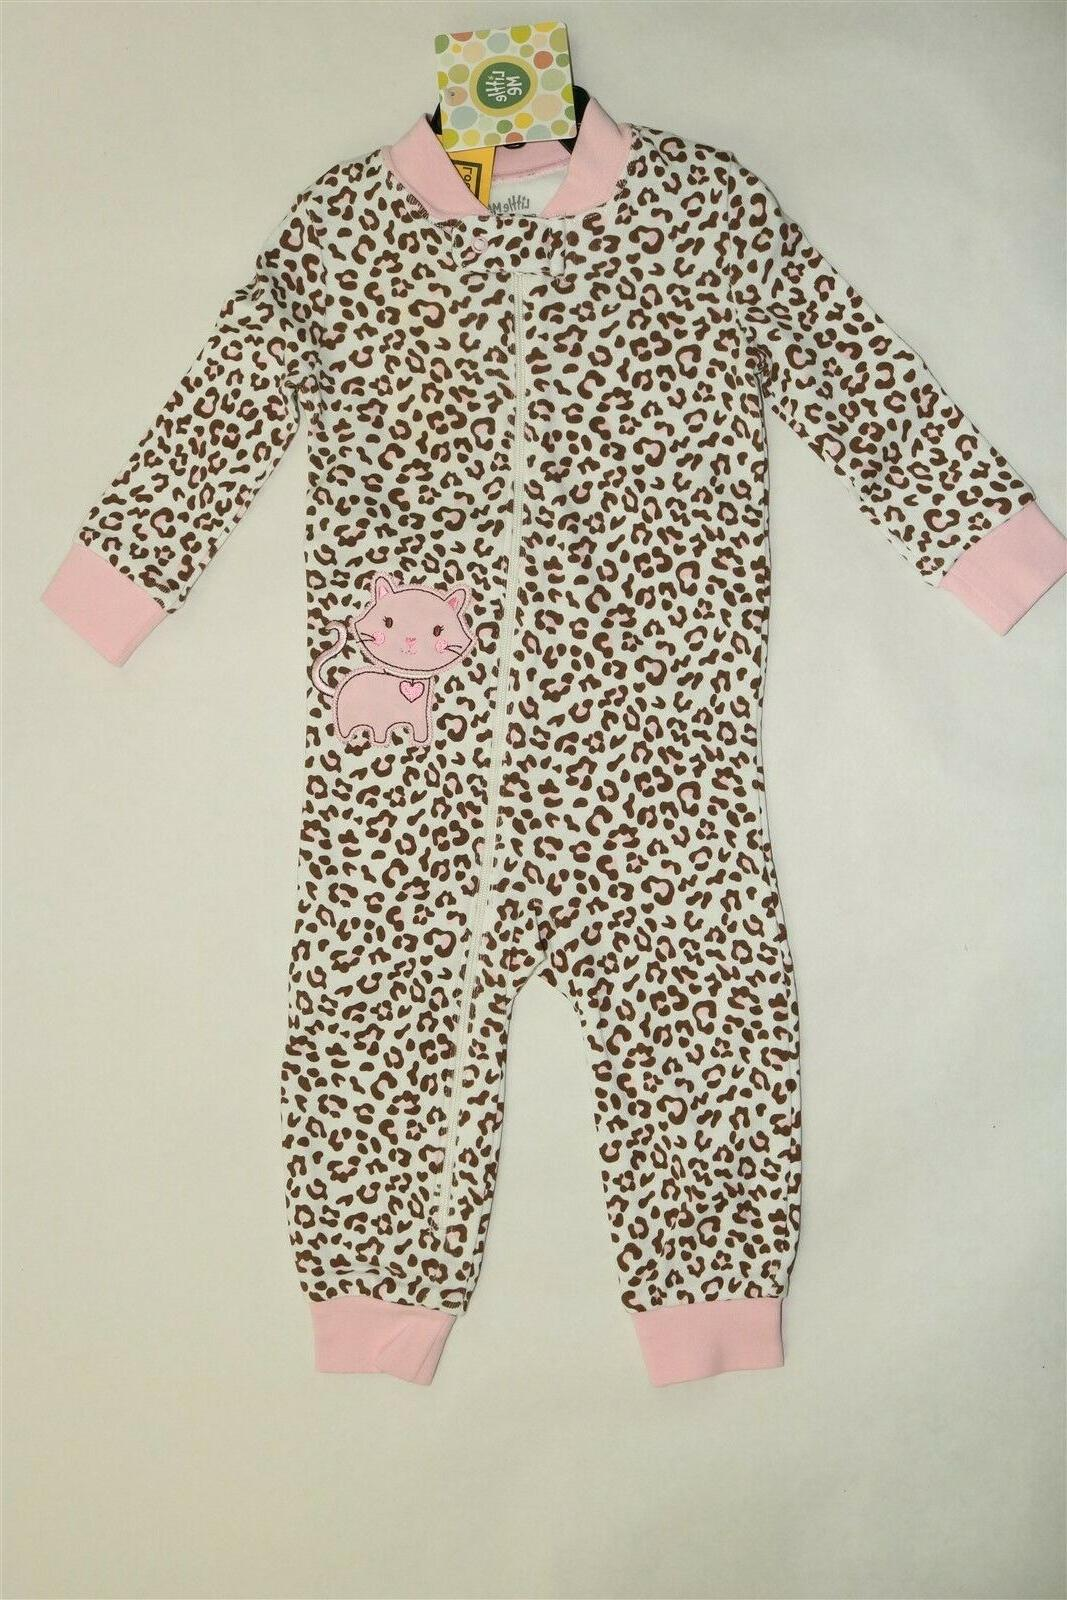 LITTLE ME Girl's Zip Front Sleeper Outfit Animal Print 12 Mo